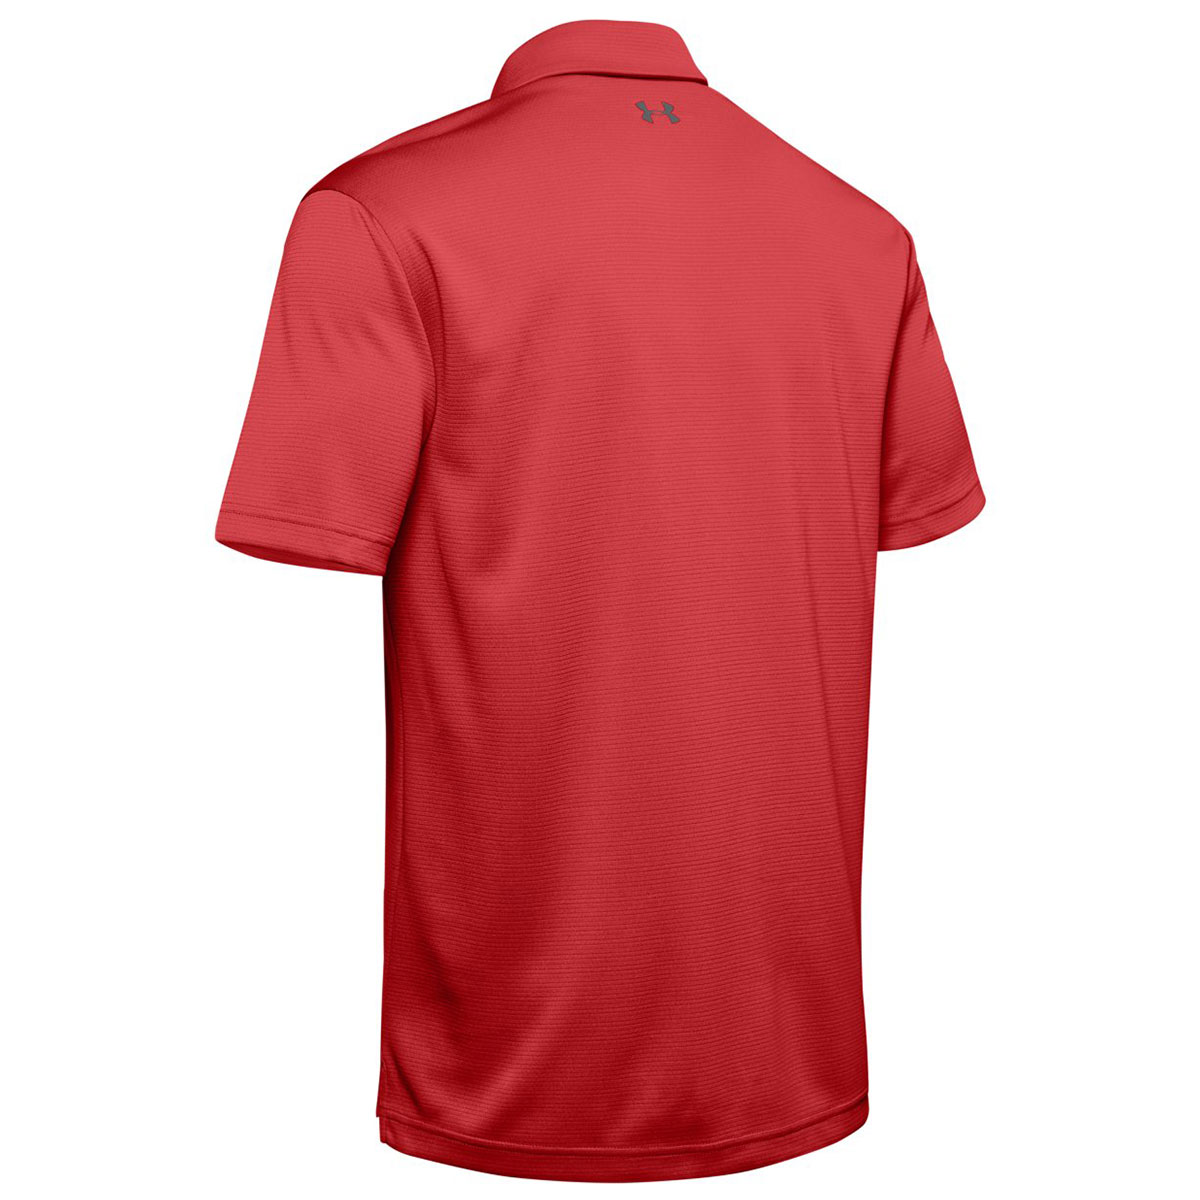 Under-Armour-Mens-2019-Golf-Tech-Wicking-Textured-Soft-Light-Polo-Shirt thumbnail 53